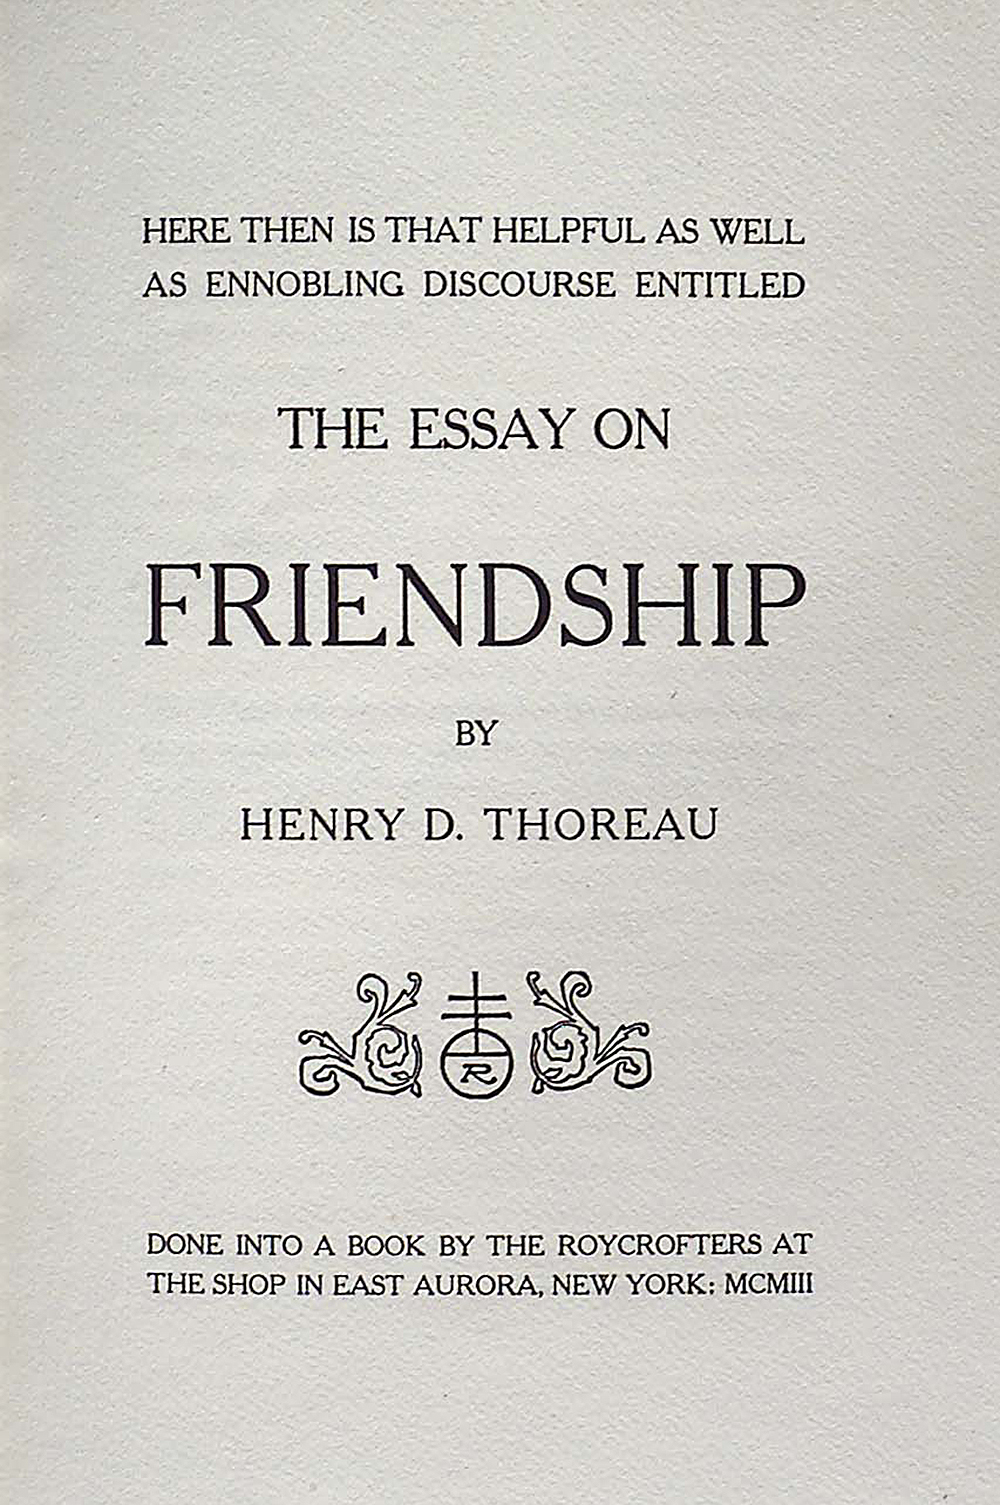 The Essay on Friendship, by Henry David Thoreau, 1903. Museum of Fine Arts, Boston, The Lloyd and Vivian Hawes Collection.